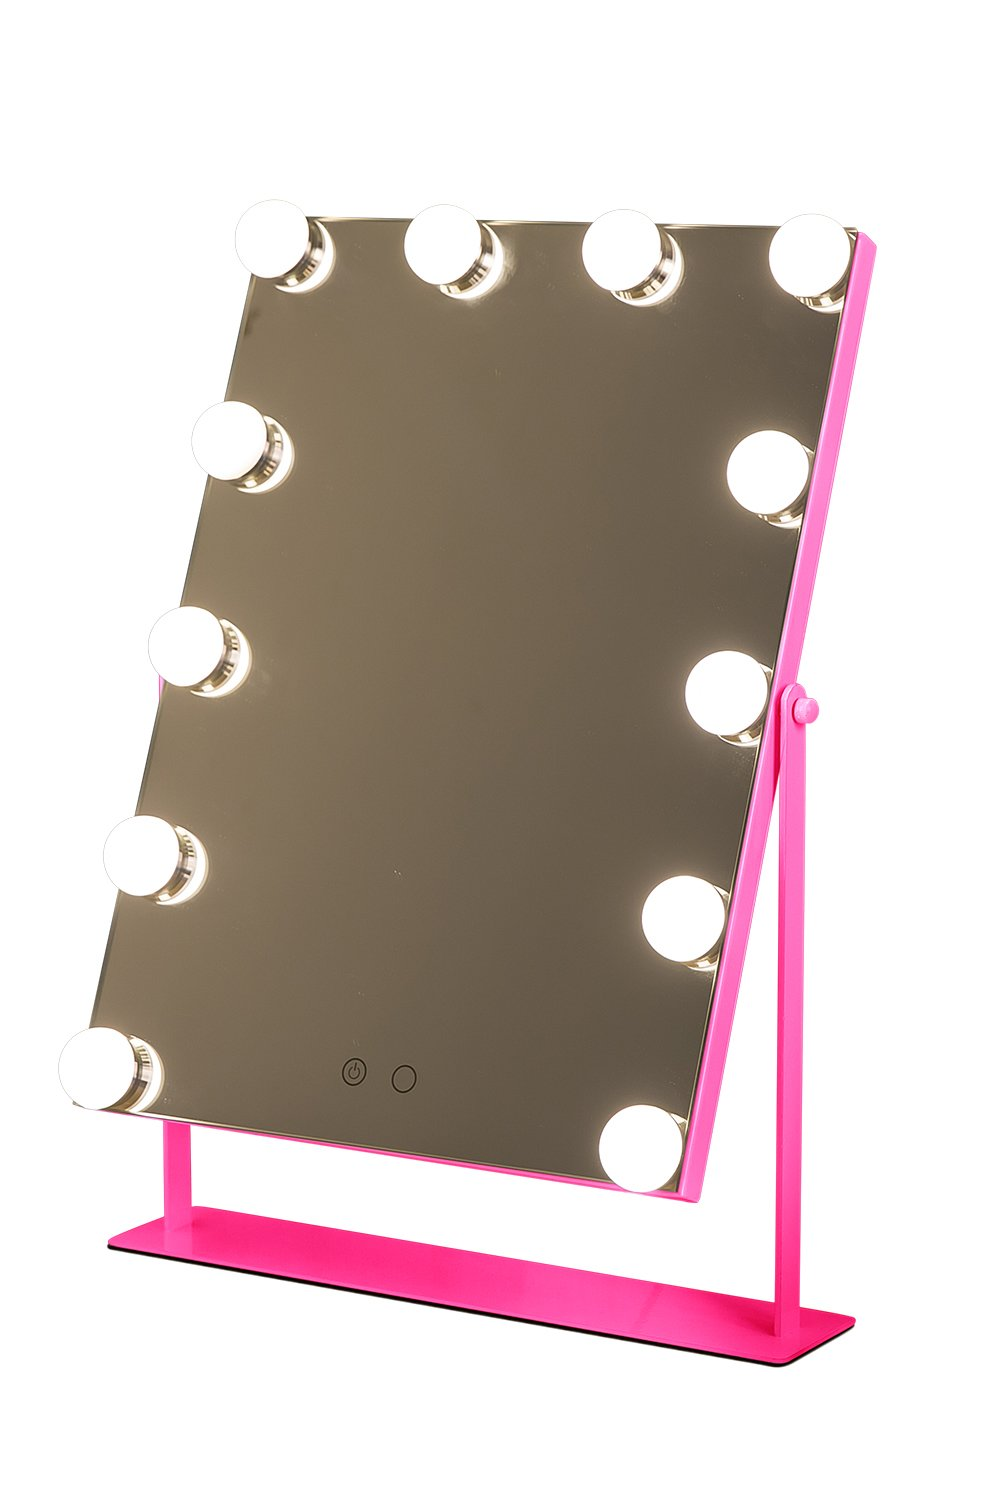 Geek-House Frameless Hollywood Tabletops Lighted Makeup Vanity Mirror (12 LED Bulb) Large with Dimmer Angle-Adjustable Pink by GeekHouse (Image #1)